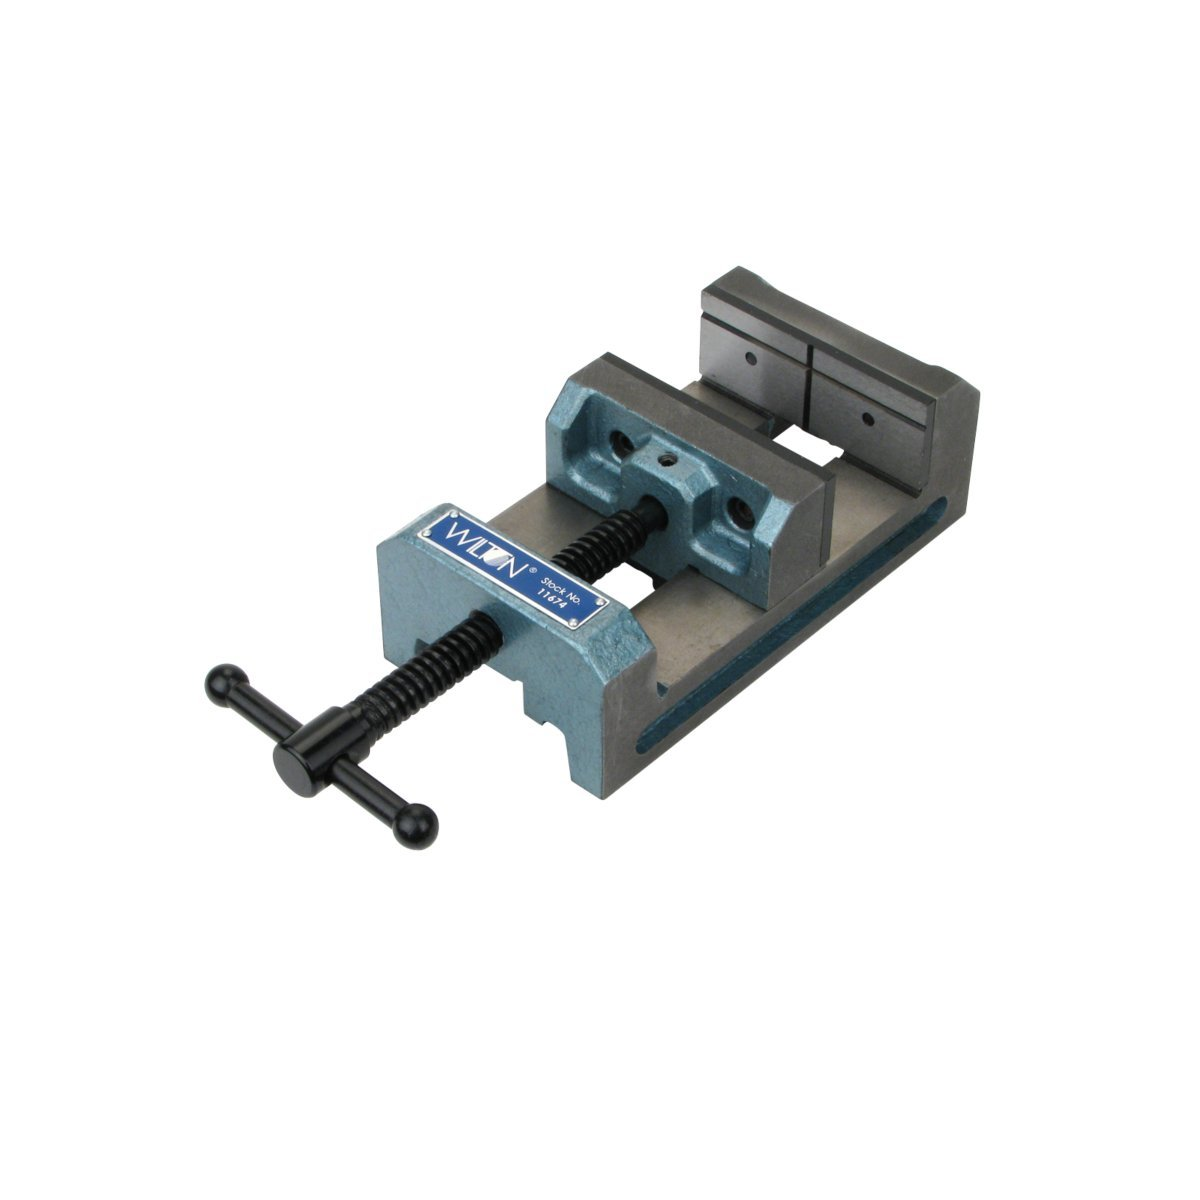 Wilton 11676 6-Inch Industrial Drill Press Vise by WILTON